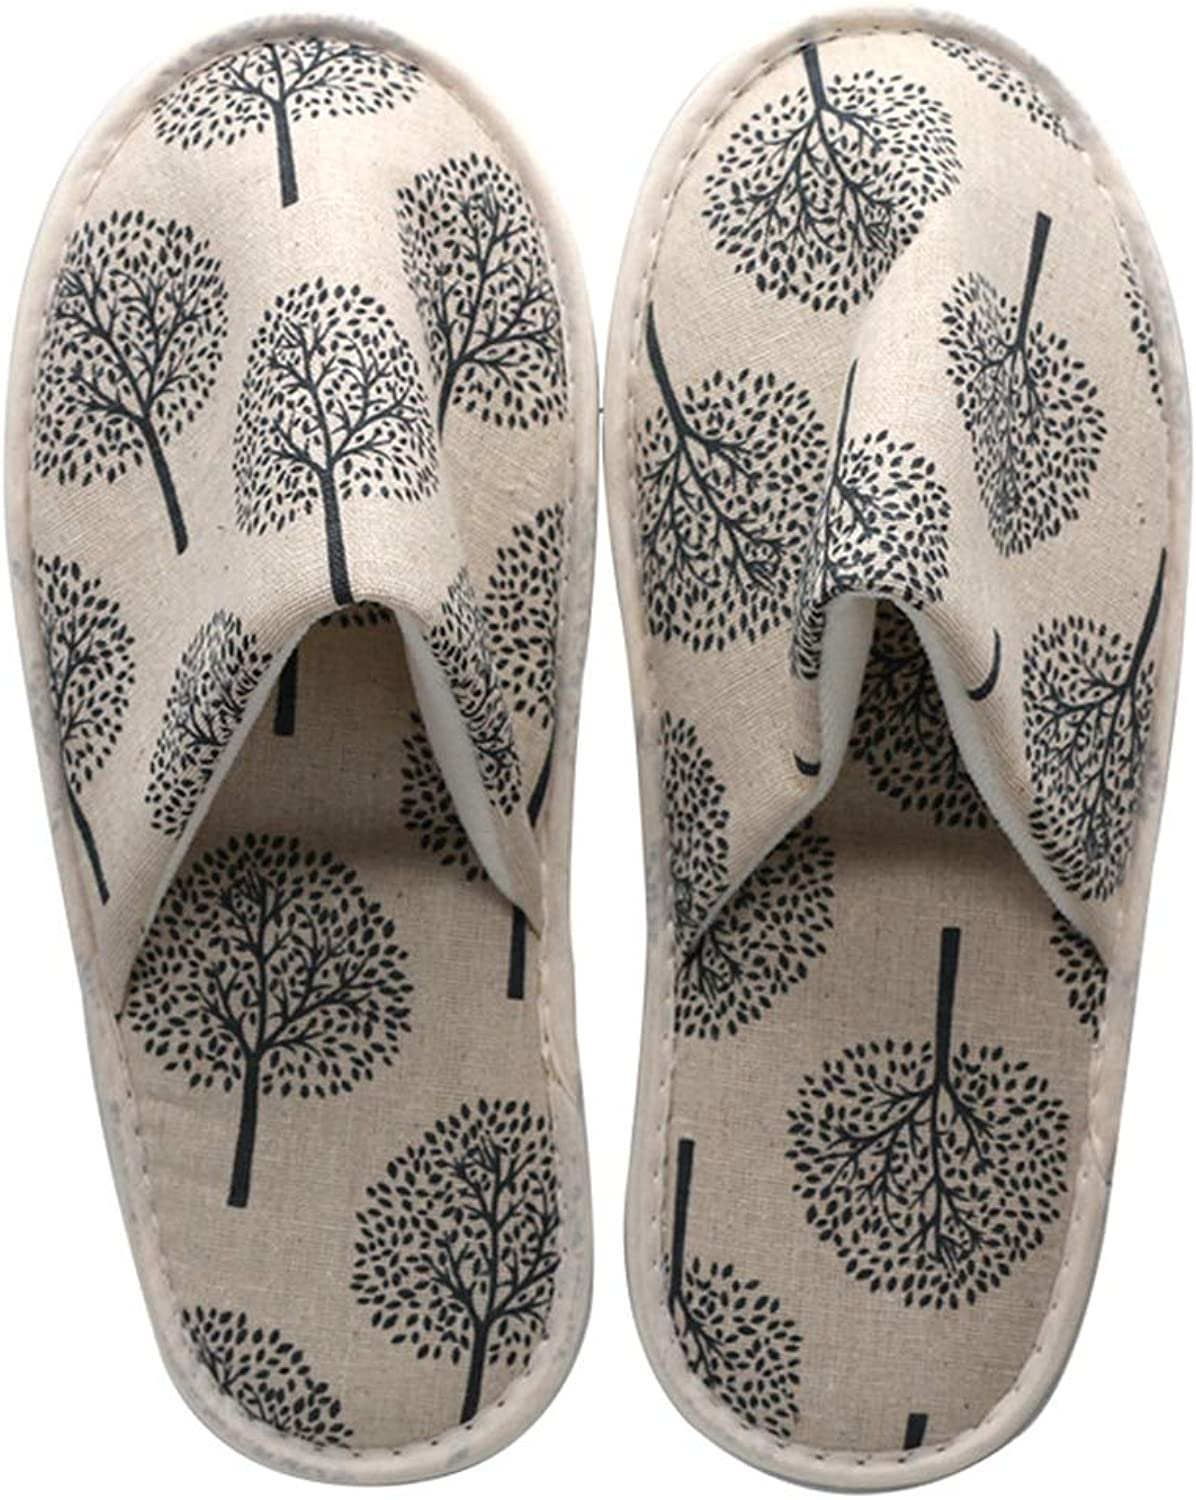 Disposable SPA Slippers Non-Skid Closed Toe Unisex Linen Slippers For Home Hotel Guest Or Commercial Use,B,70Pair